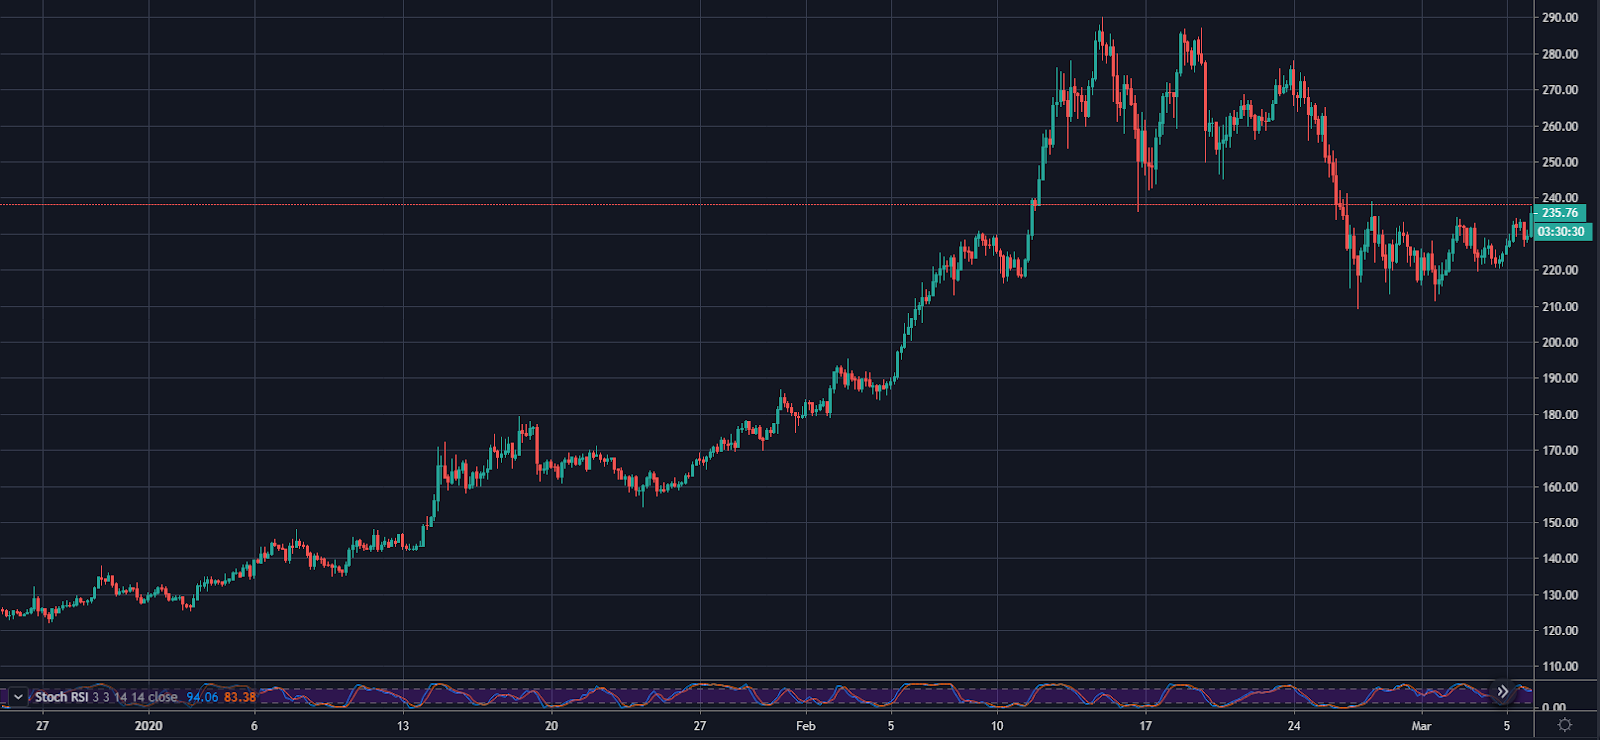 ETH/USD 4-Hr Chart. Source: TradingView